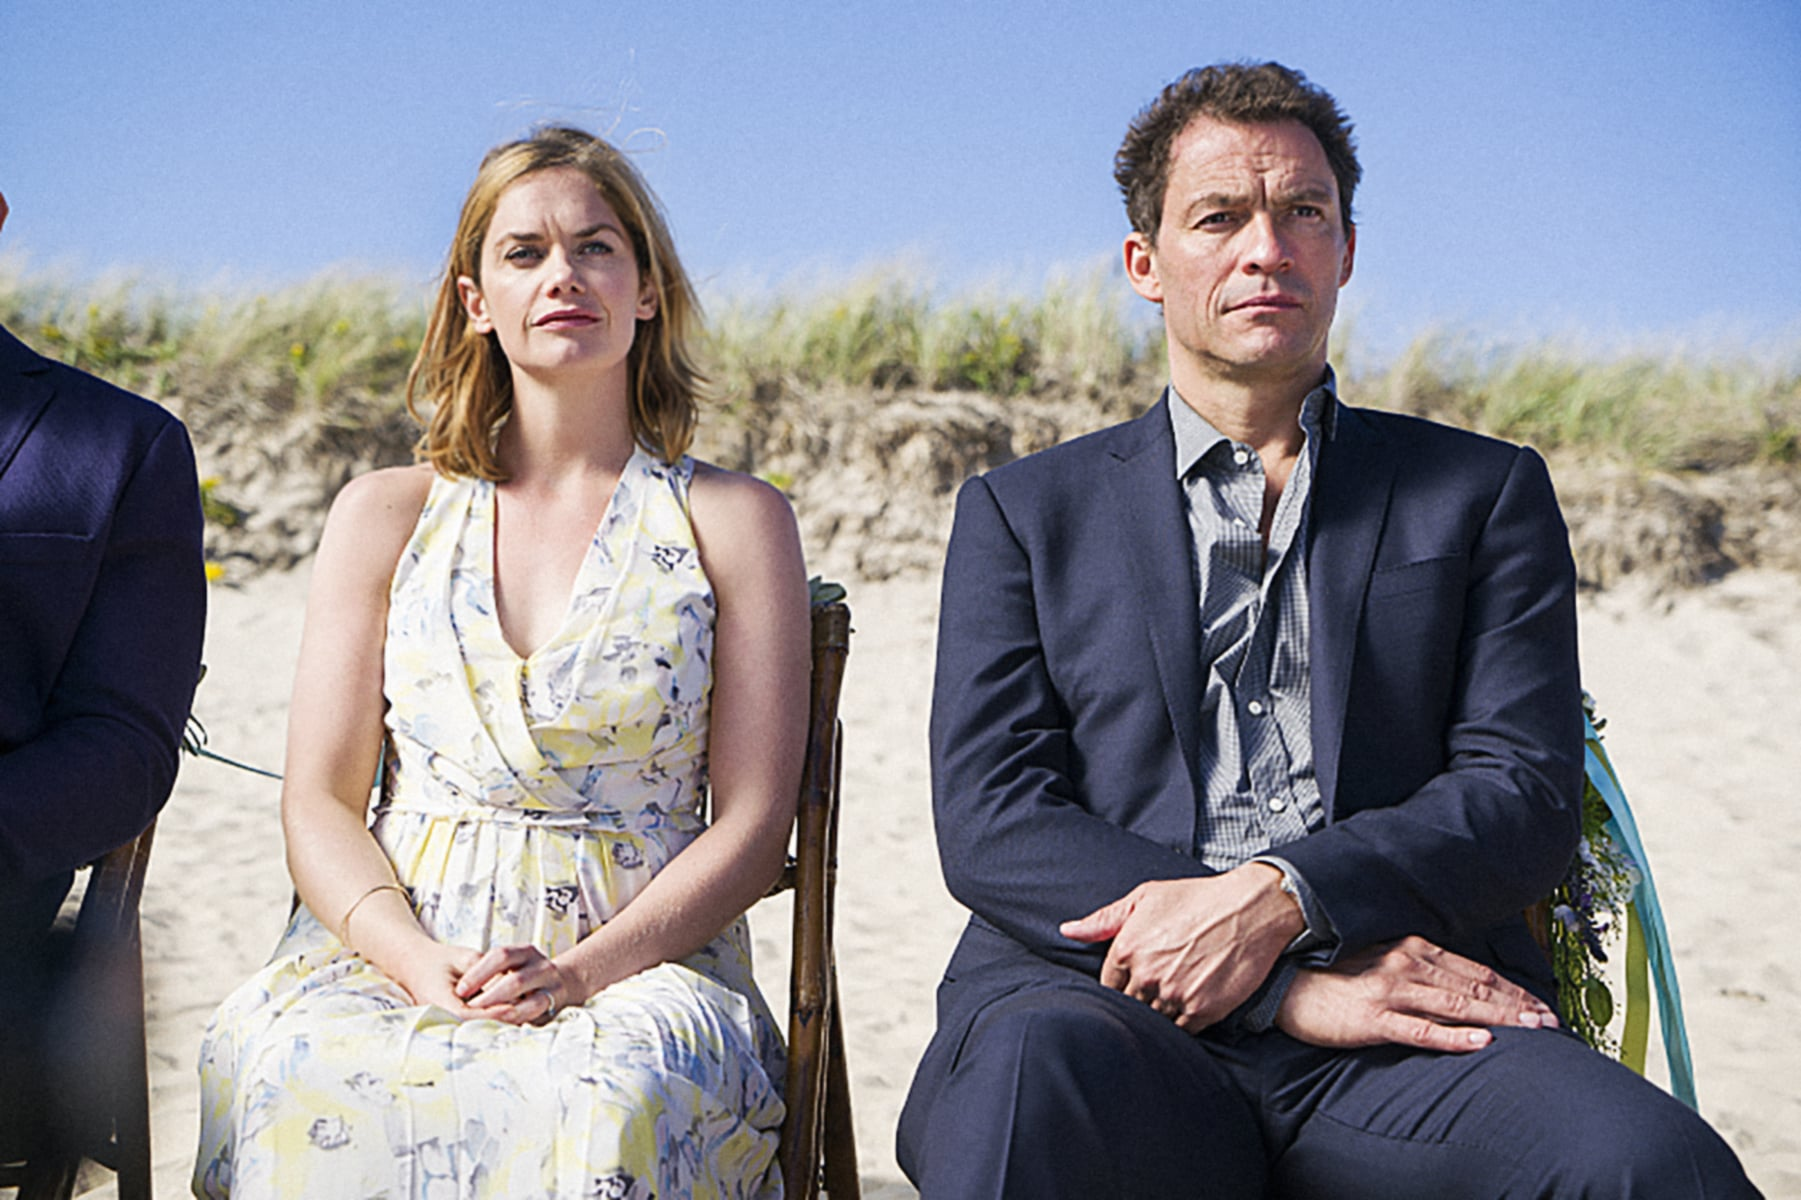 THE AFFAIR, l-r: Ruth Wilson, Dominic West, (Season 2, Episode 12, aired December 20, 2015). ph: Mark Schafer/Showtime/courtesy Everett Collection